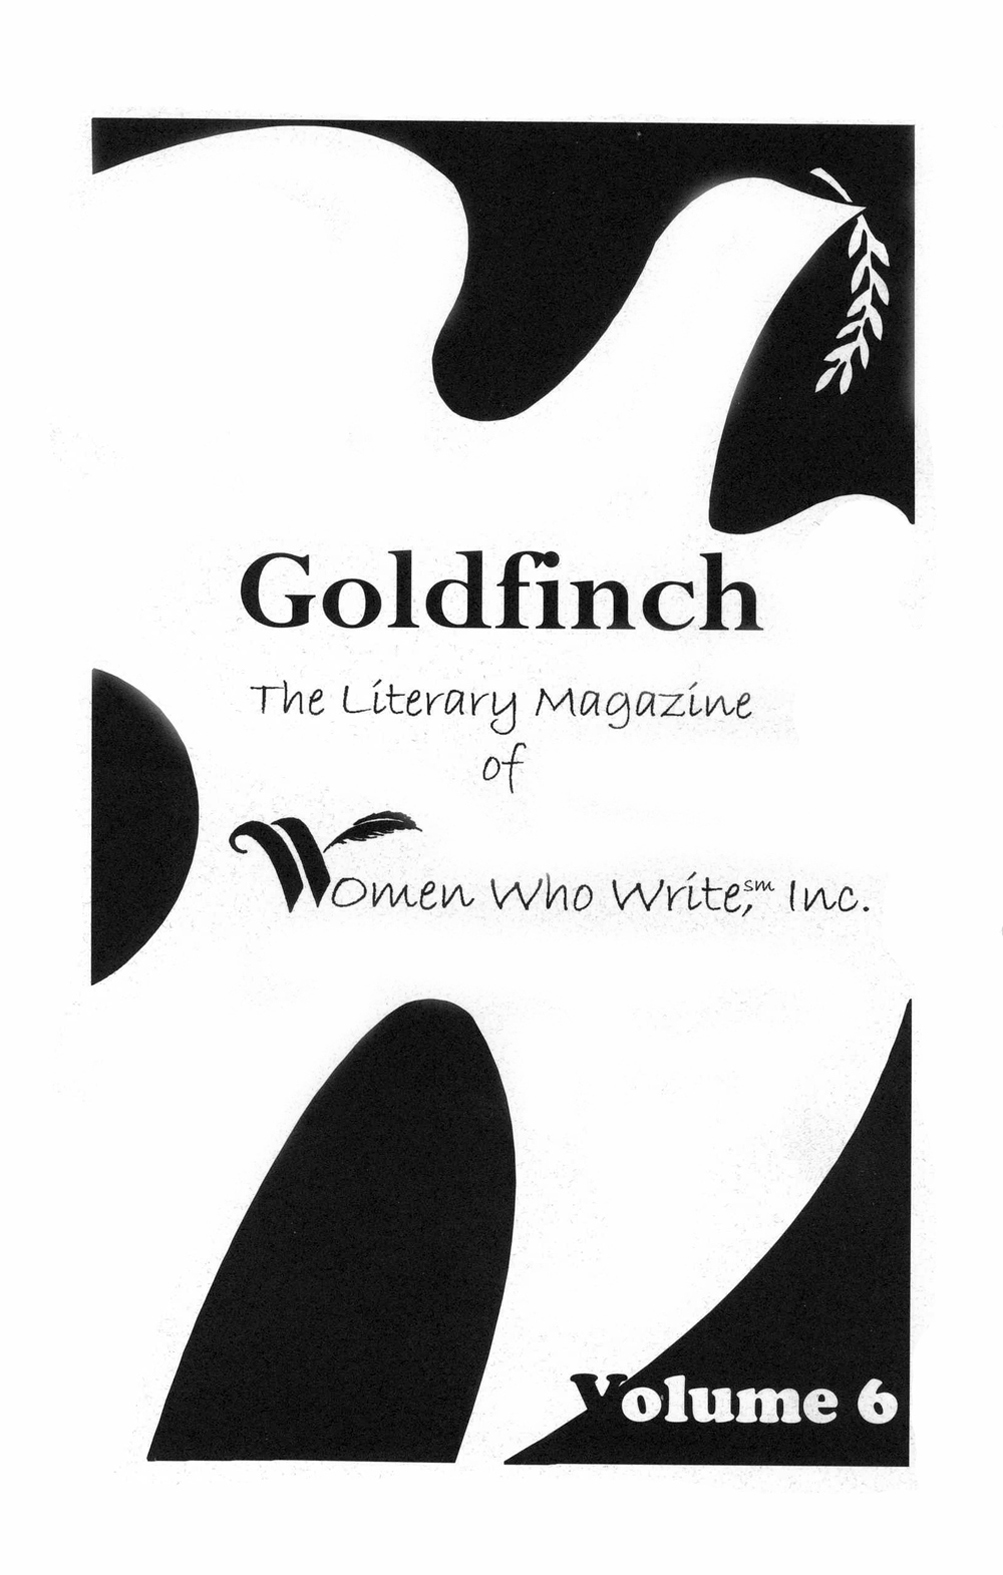 Goldfinch, Vol. 6, 2002